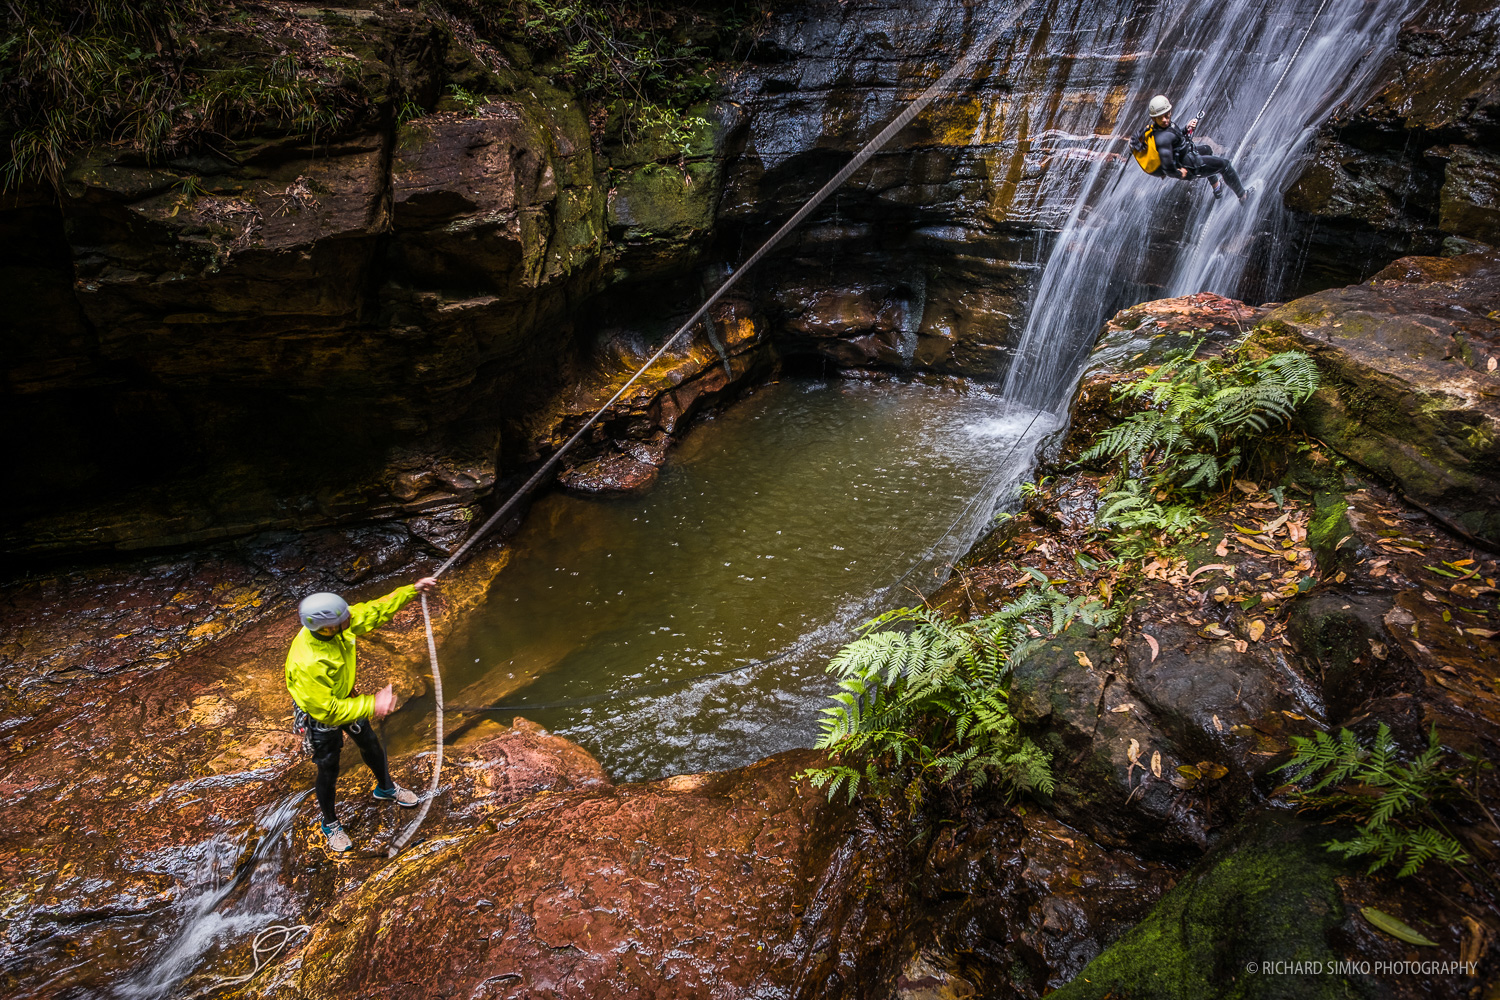 Canyoning instructor is belaying a client at Wentworth Falls.